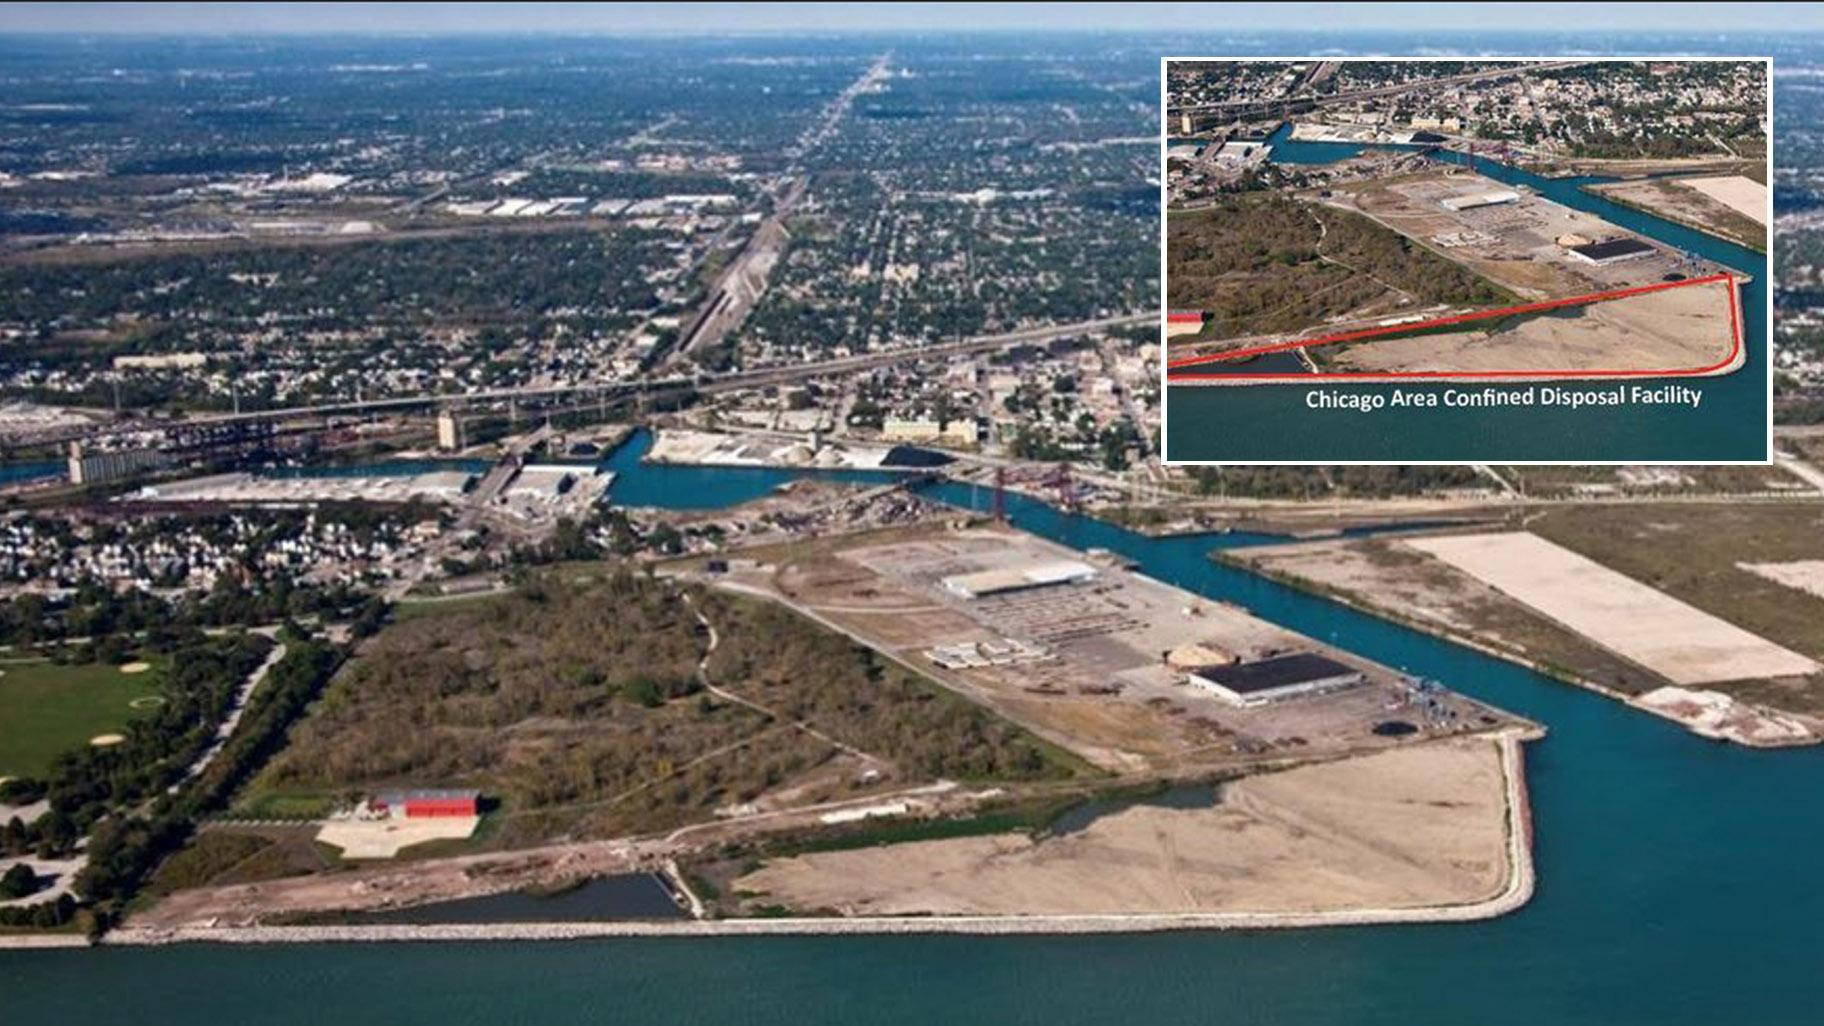 An aerial view of the Chicago Area Confined Disposal Facility, a 45-acre site on Chicago's Southeast Side that has been in operation since 1984. Inset: The CDF is outlined in red. (Credit: Army Corps of Engineers)